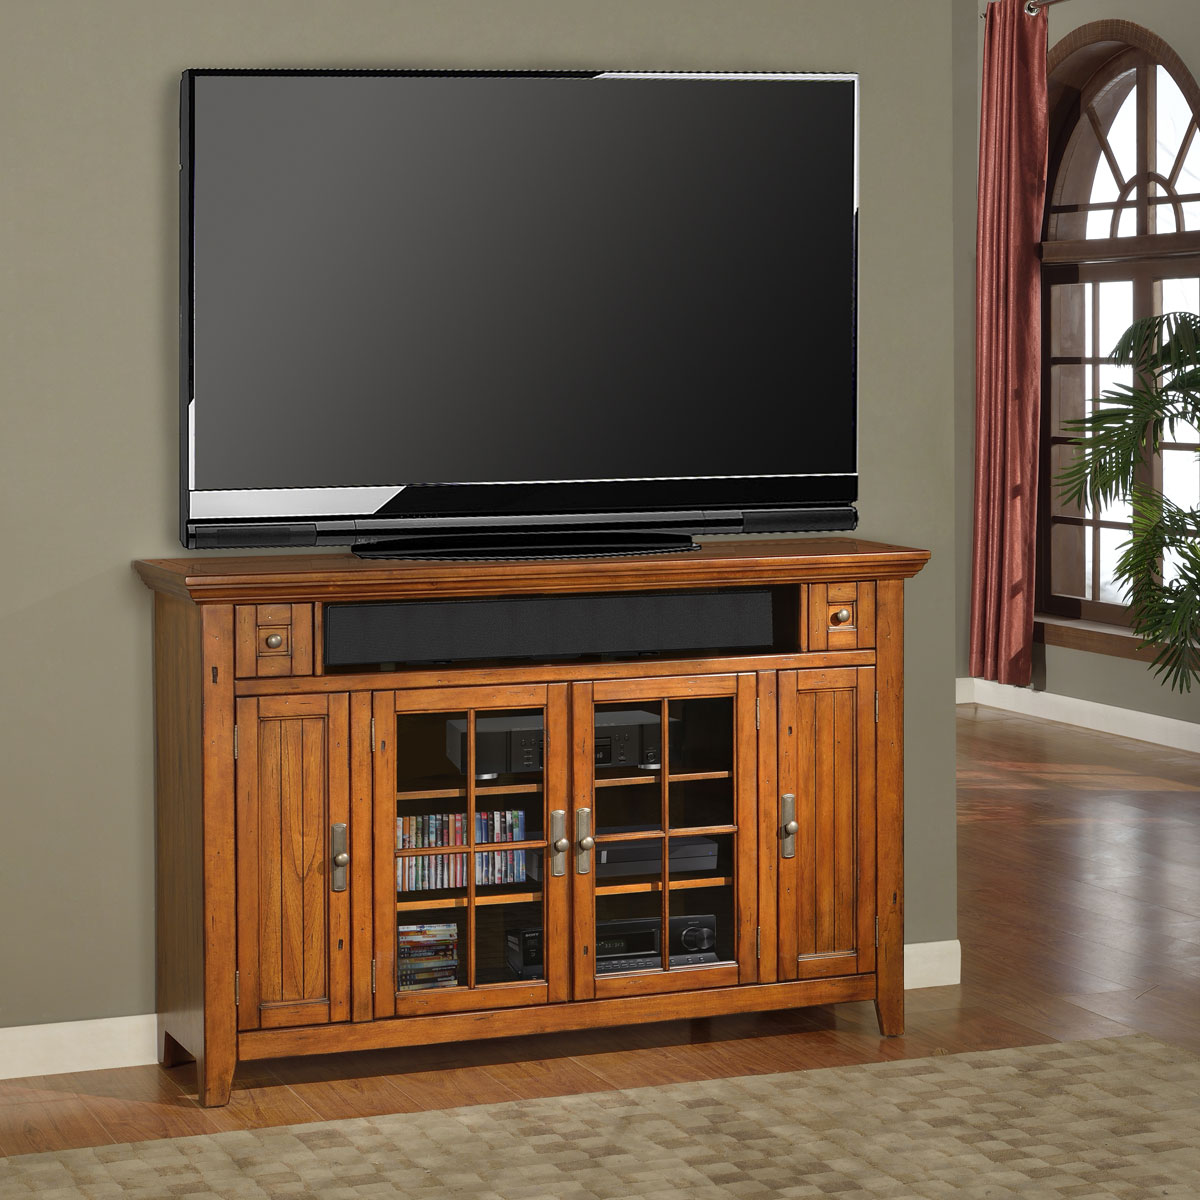 Parker house terrace 62in tv console ph ter 62tl at for Terrace house tv